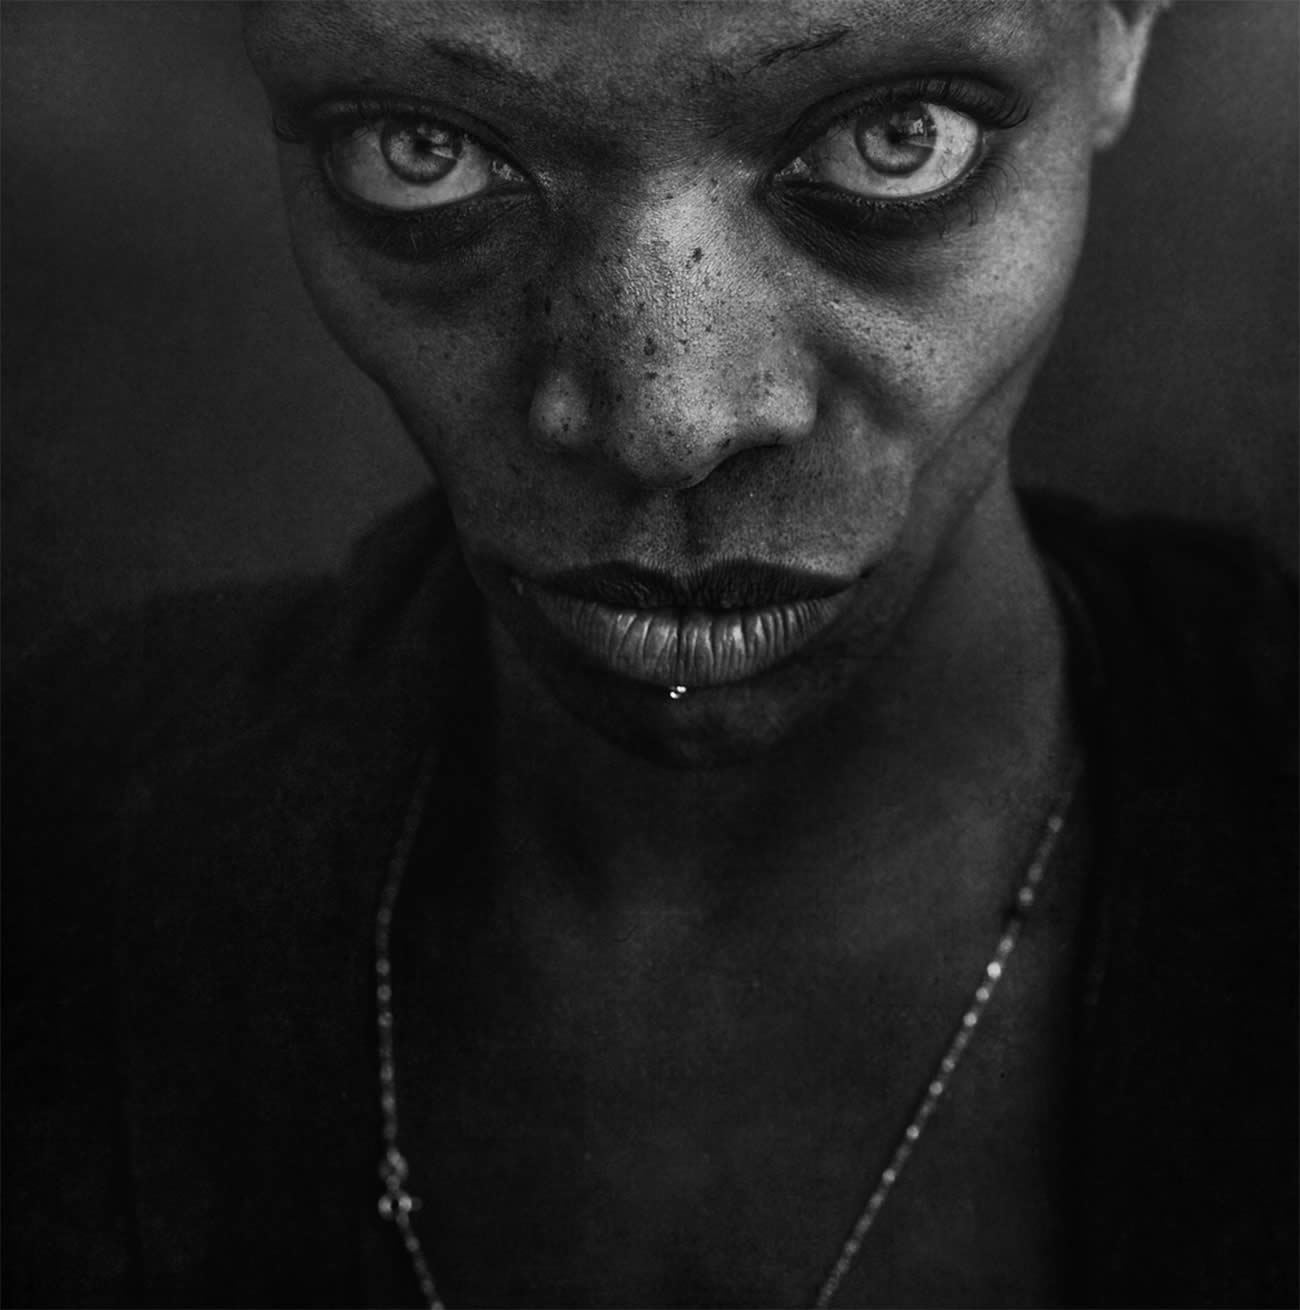 bright eyes and freckles, street photography by lee jeffries